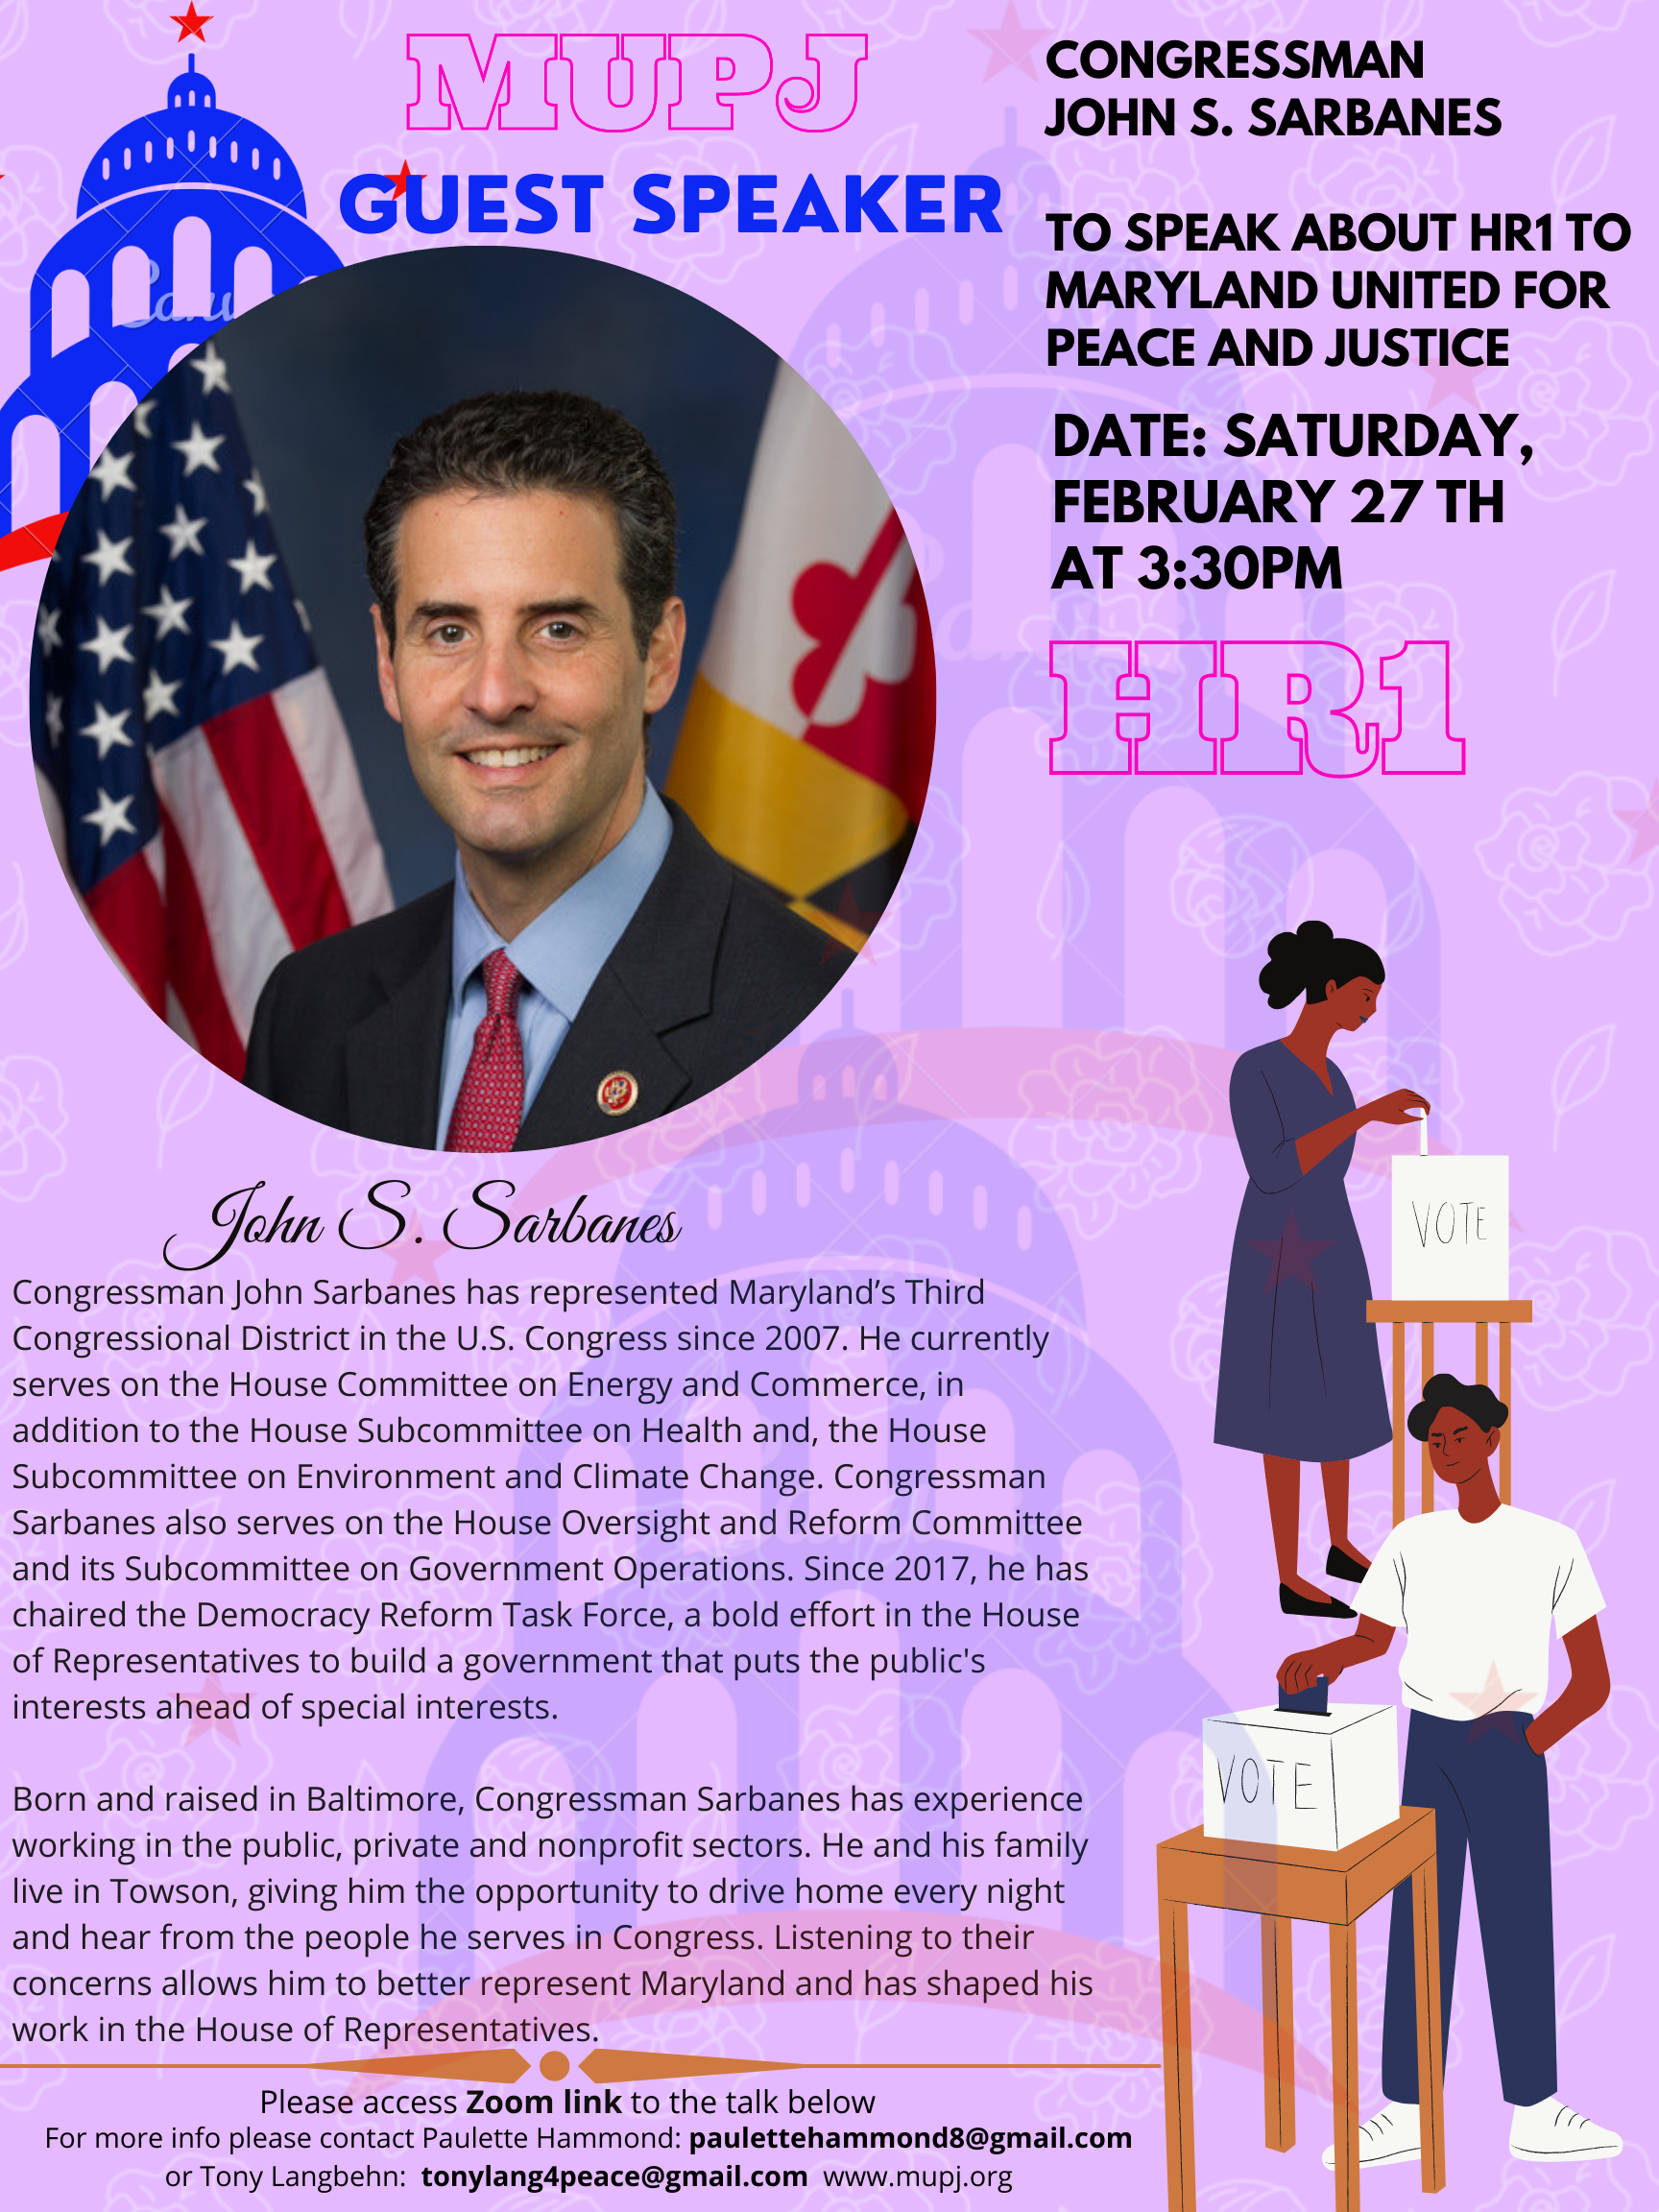 Congressman John Sarbanes will speak at MUPJ on Saturday, February 27th, 2021 at 3:30PM via ZOOM.